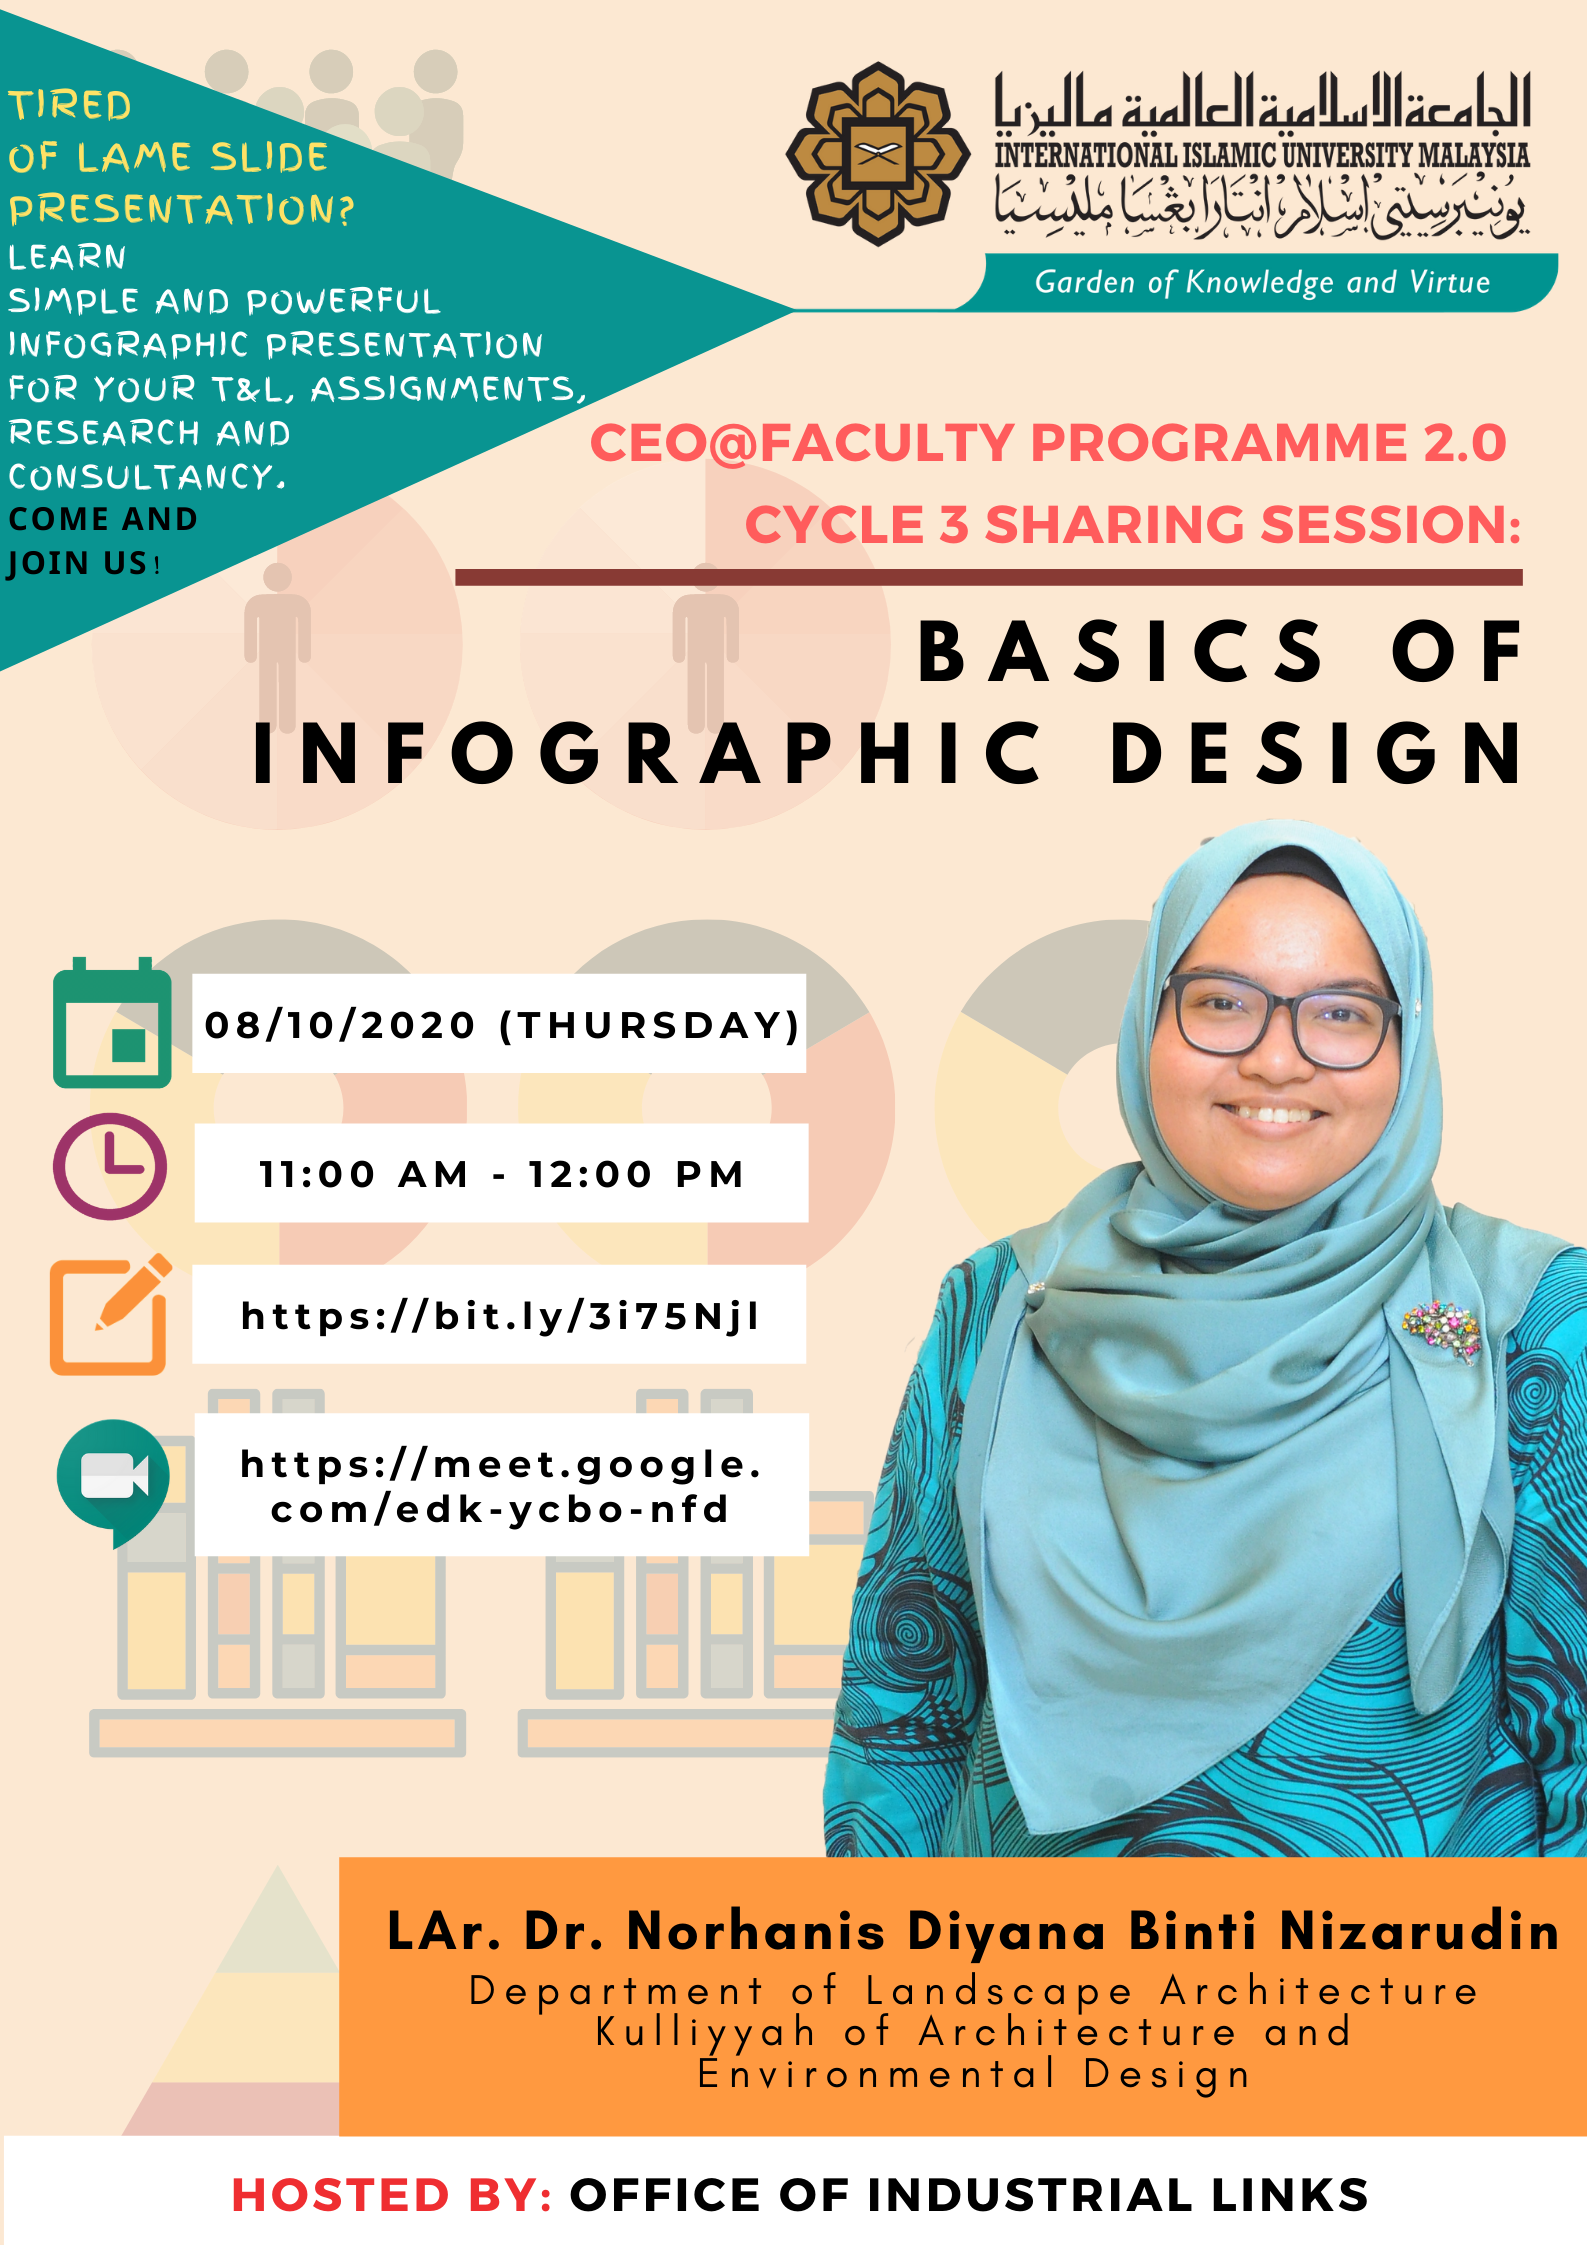 """INVITATION TO ATTEND WEBINAR SESSION ON """"CEO@FACULTY PROGRAMME 2.0 CYCLE 3 SHARING SESSION: BASICS OF INFOGRAPHIC DESIGN"""""""